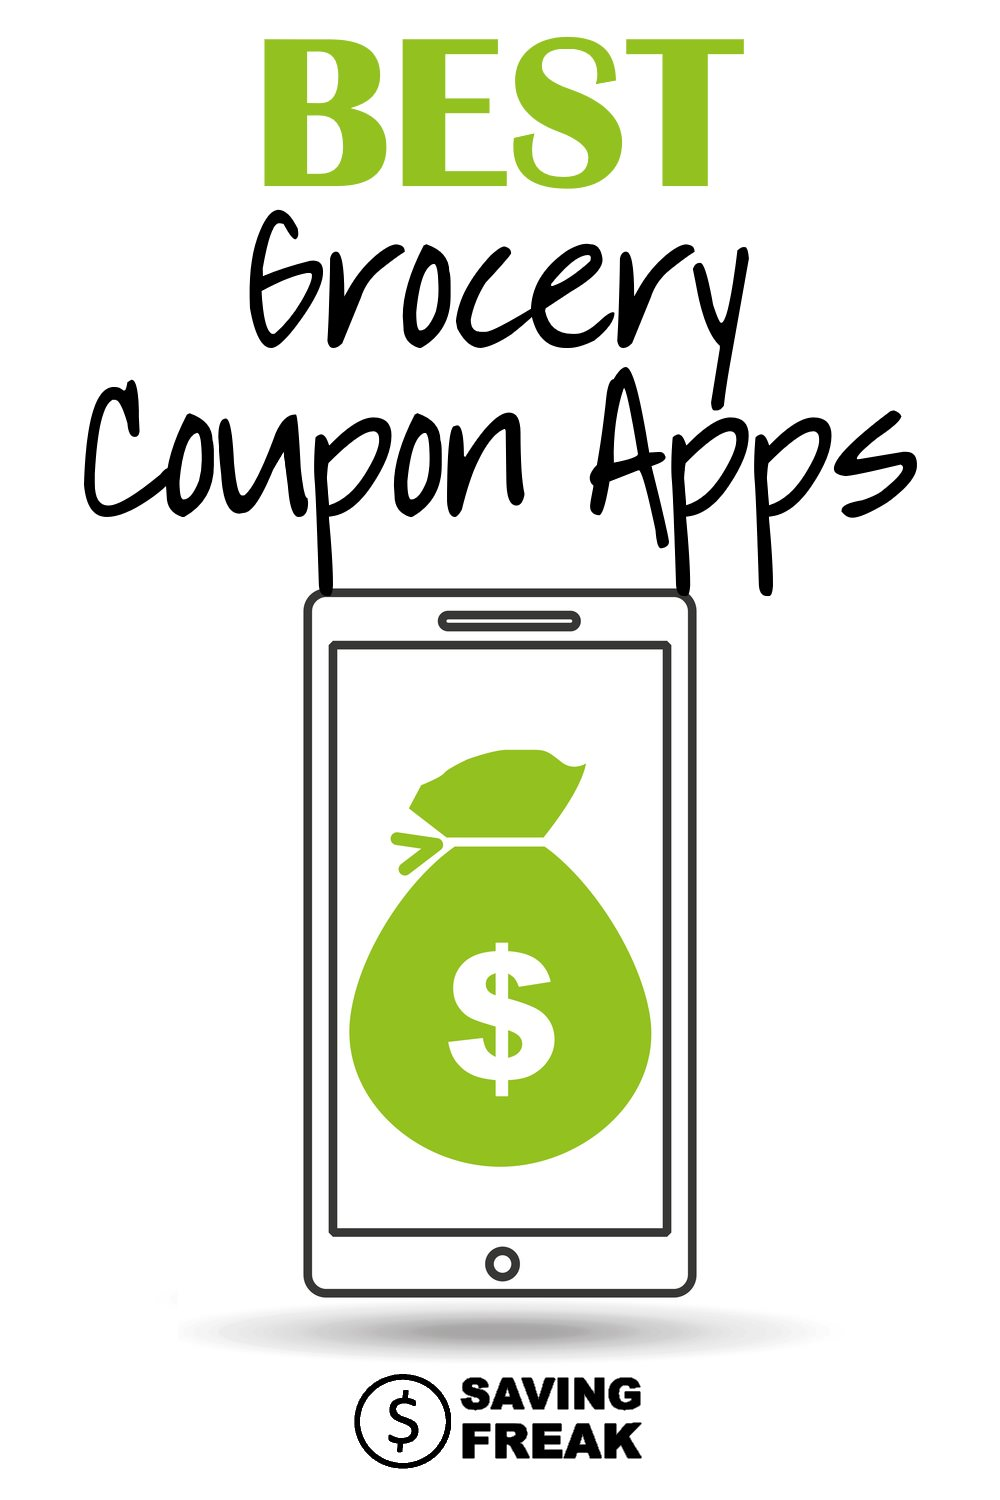 Grocery coupon apps are all the rage. This guide will help you find the best apps and know which ones you can use together for more savings.